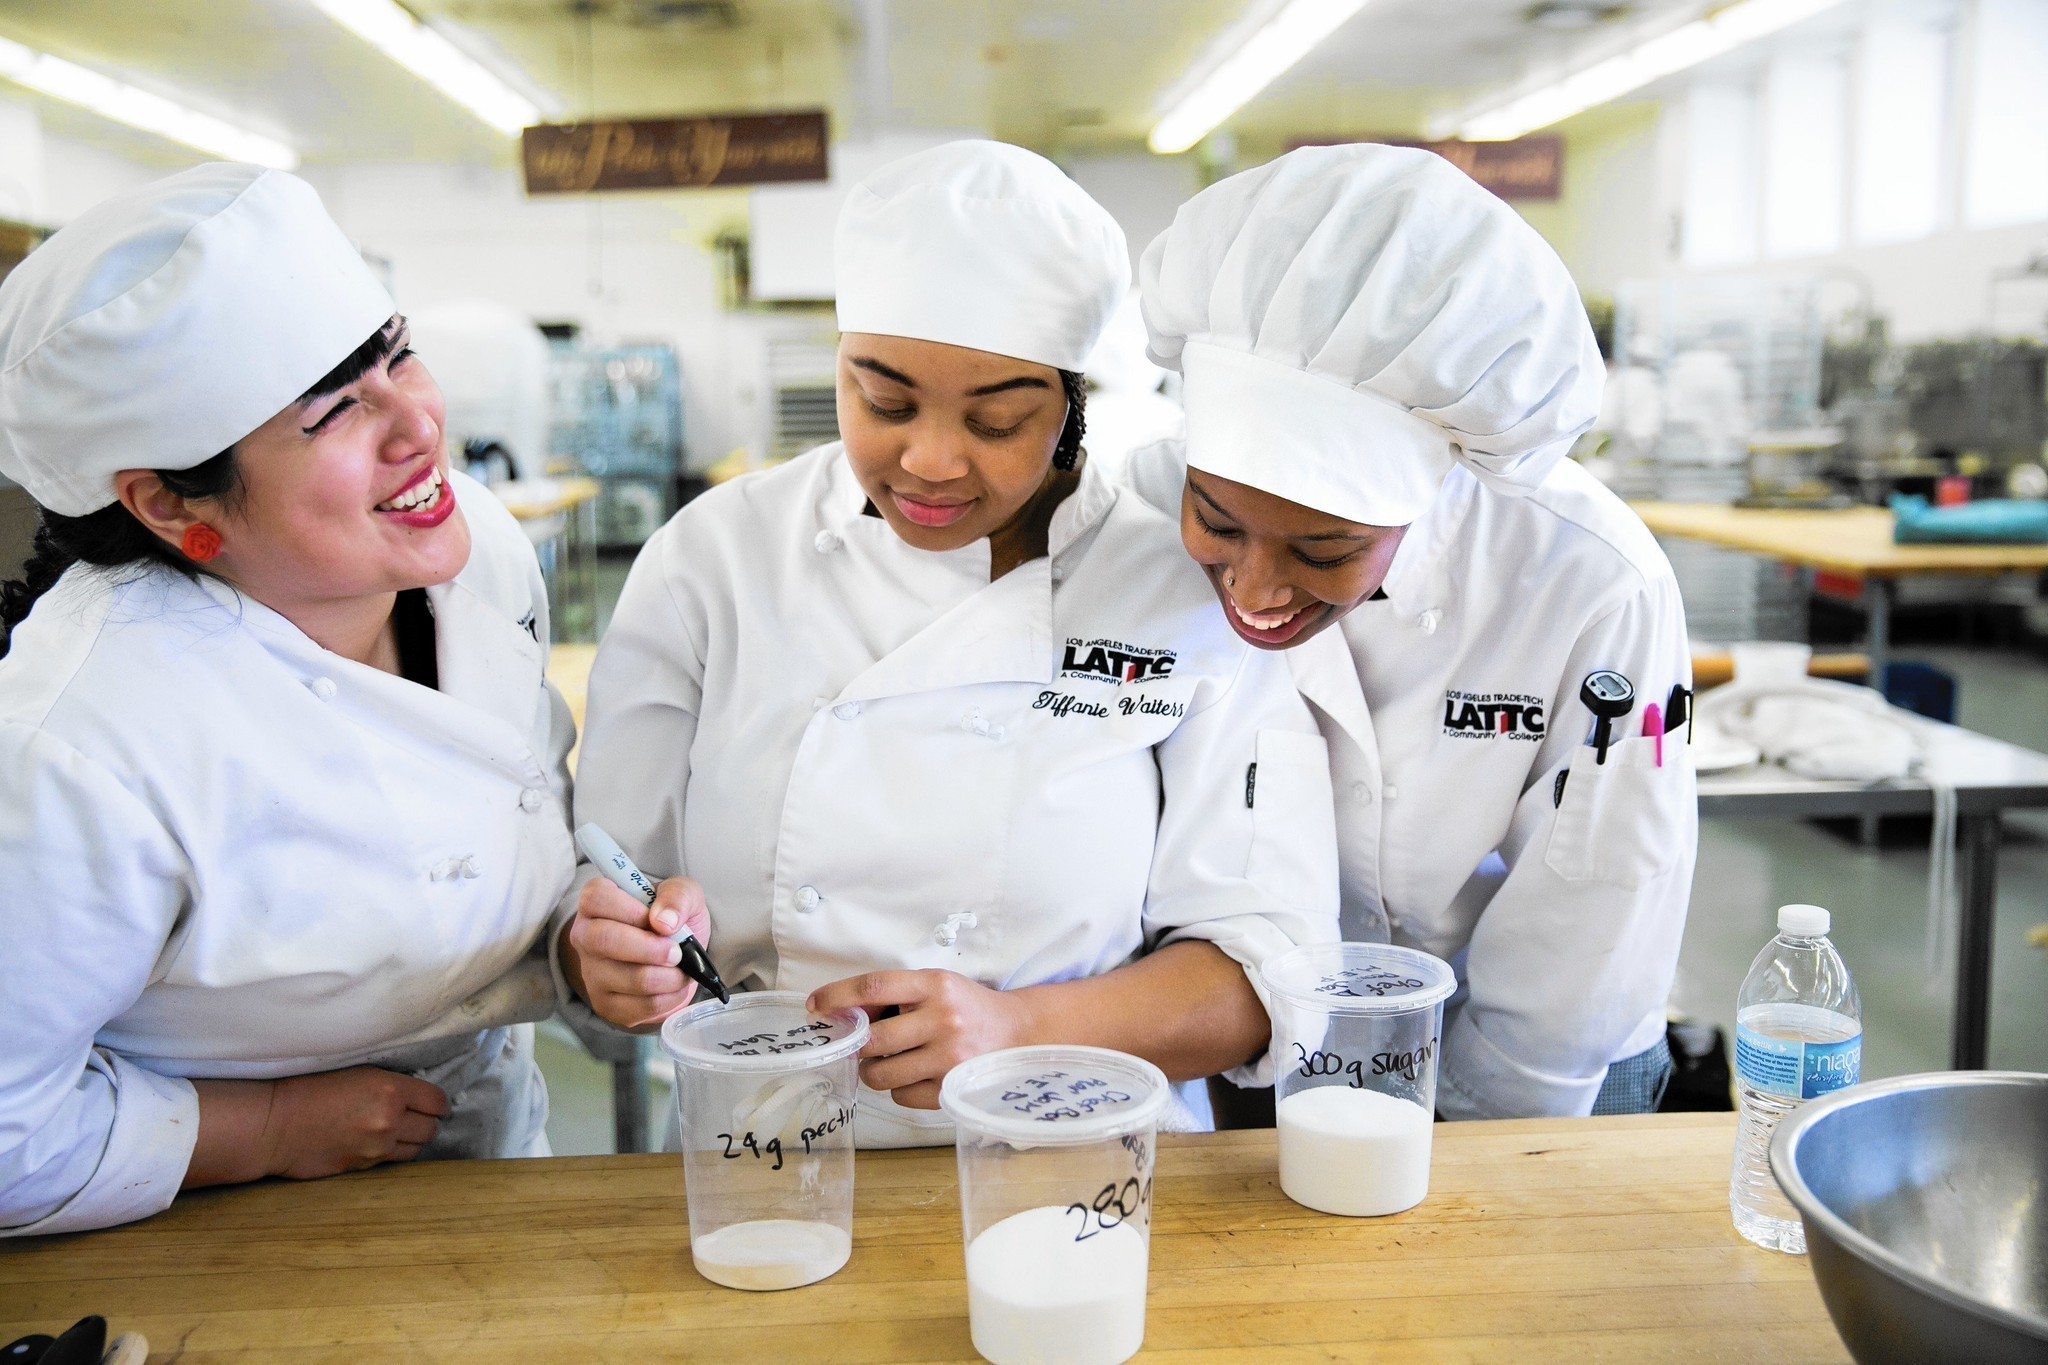 White apron chef fresno - Trade Tech Gives Culinary Students The Ingredients For Fulfilling Careers La Times